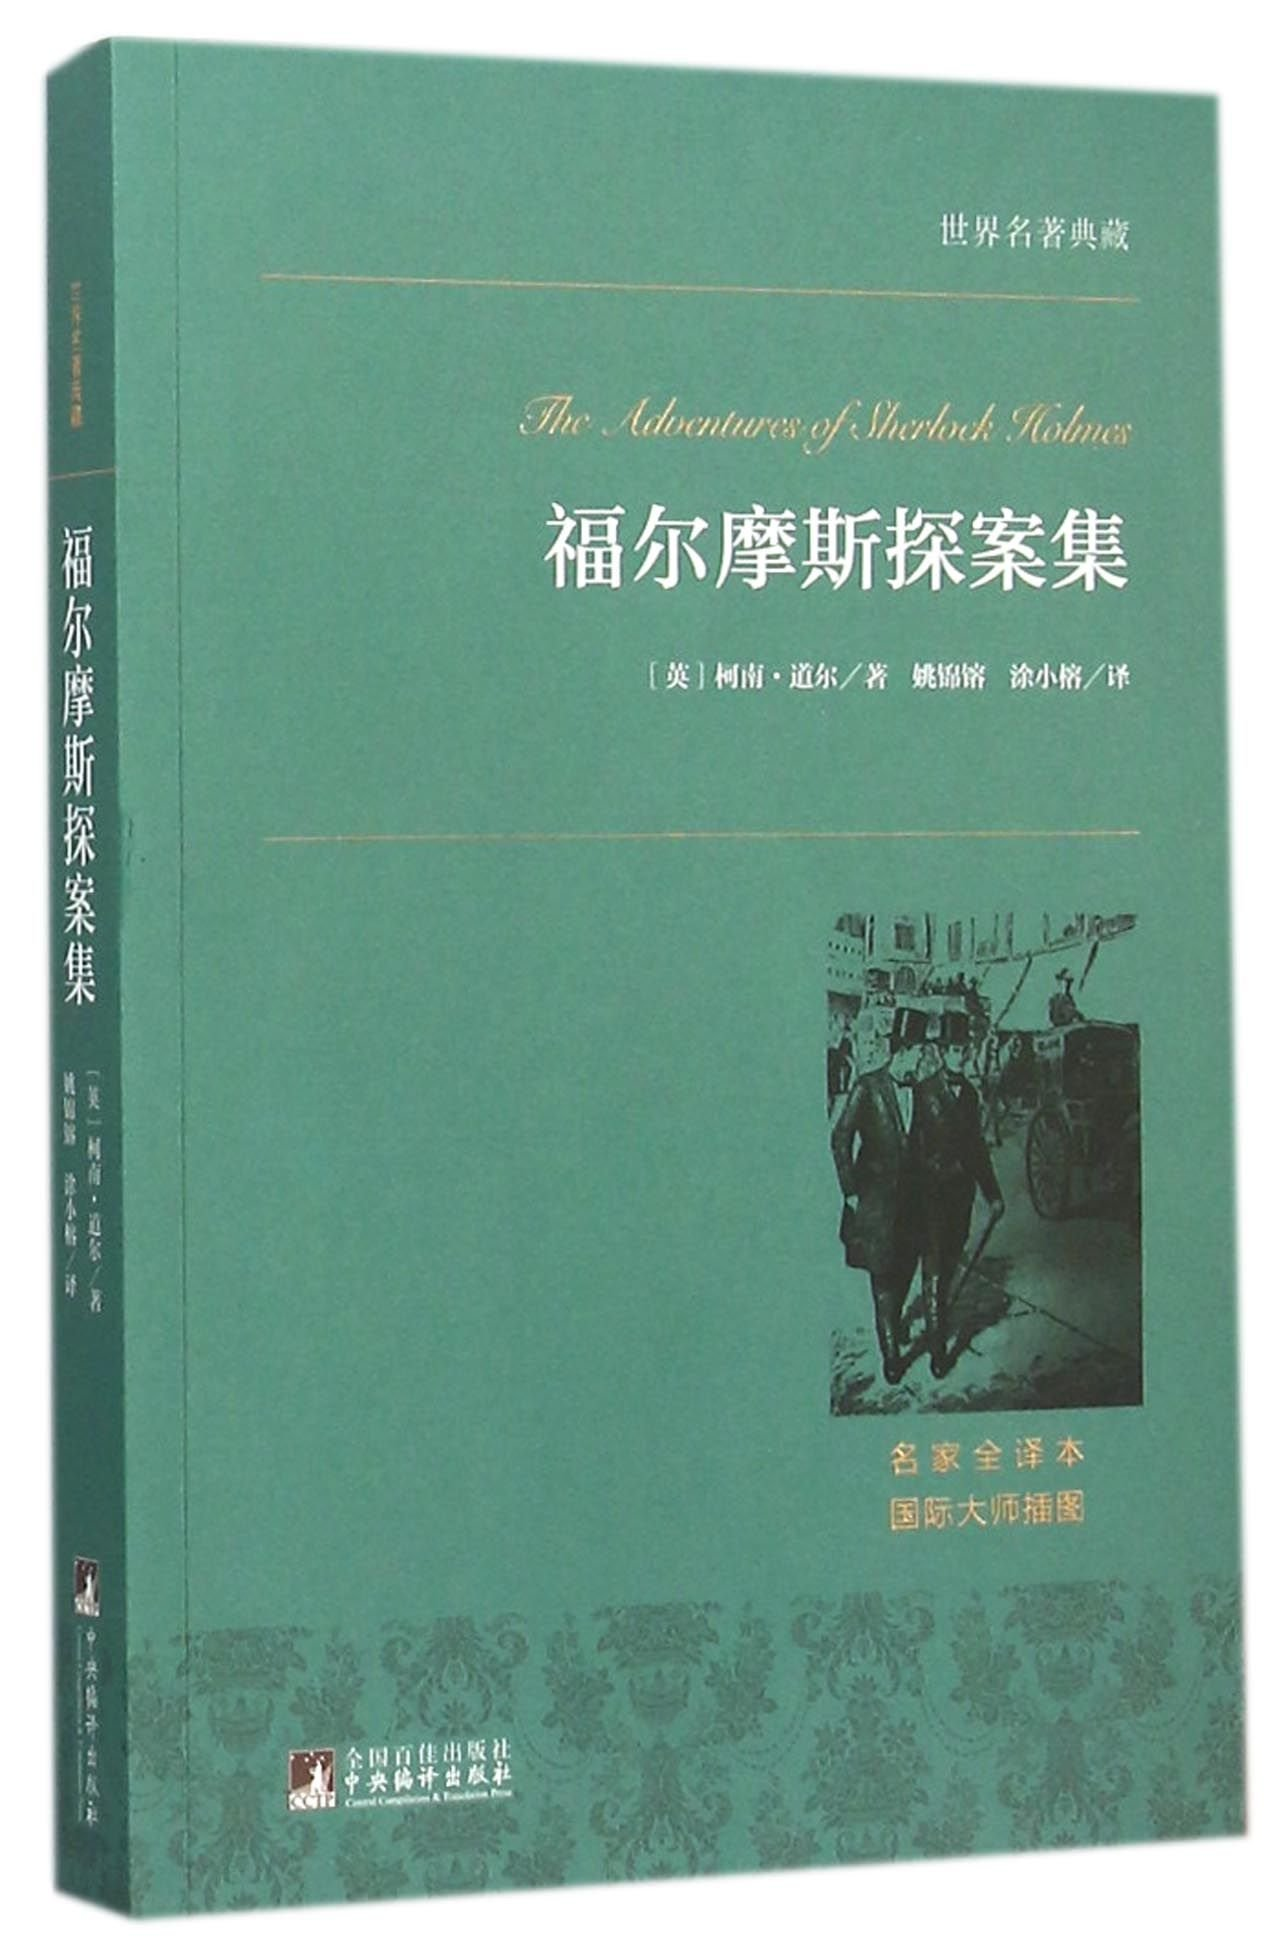 The Adventures Of Sherlock Holmes (Chinese Edition)